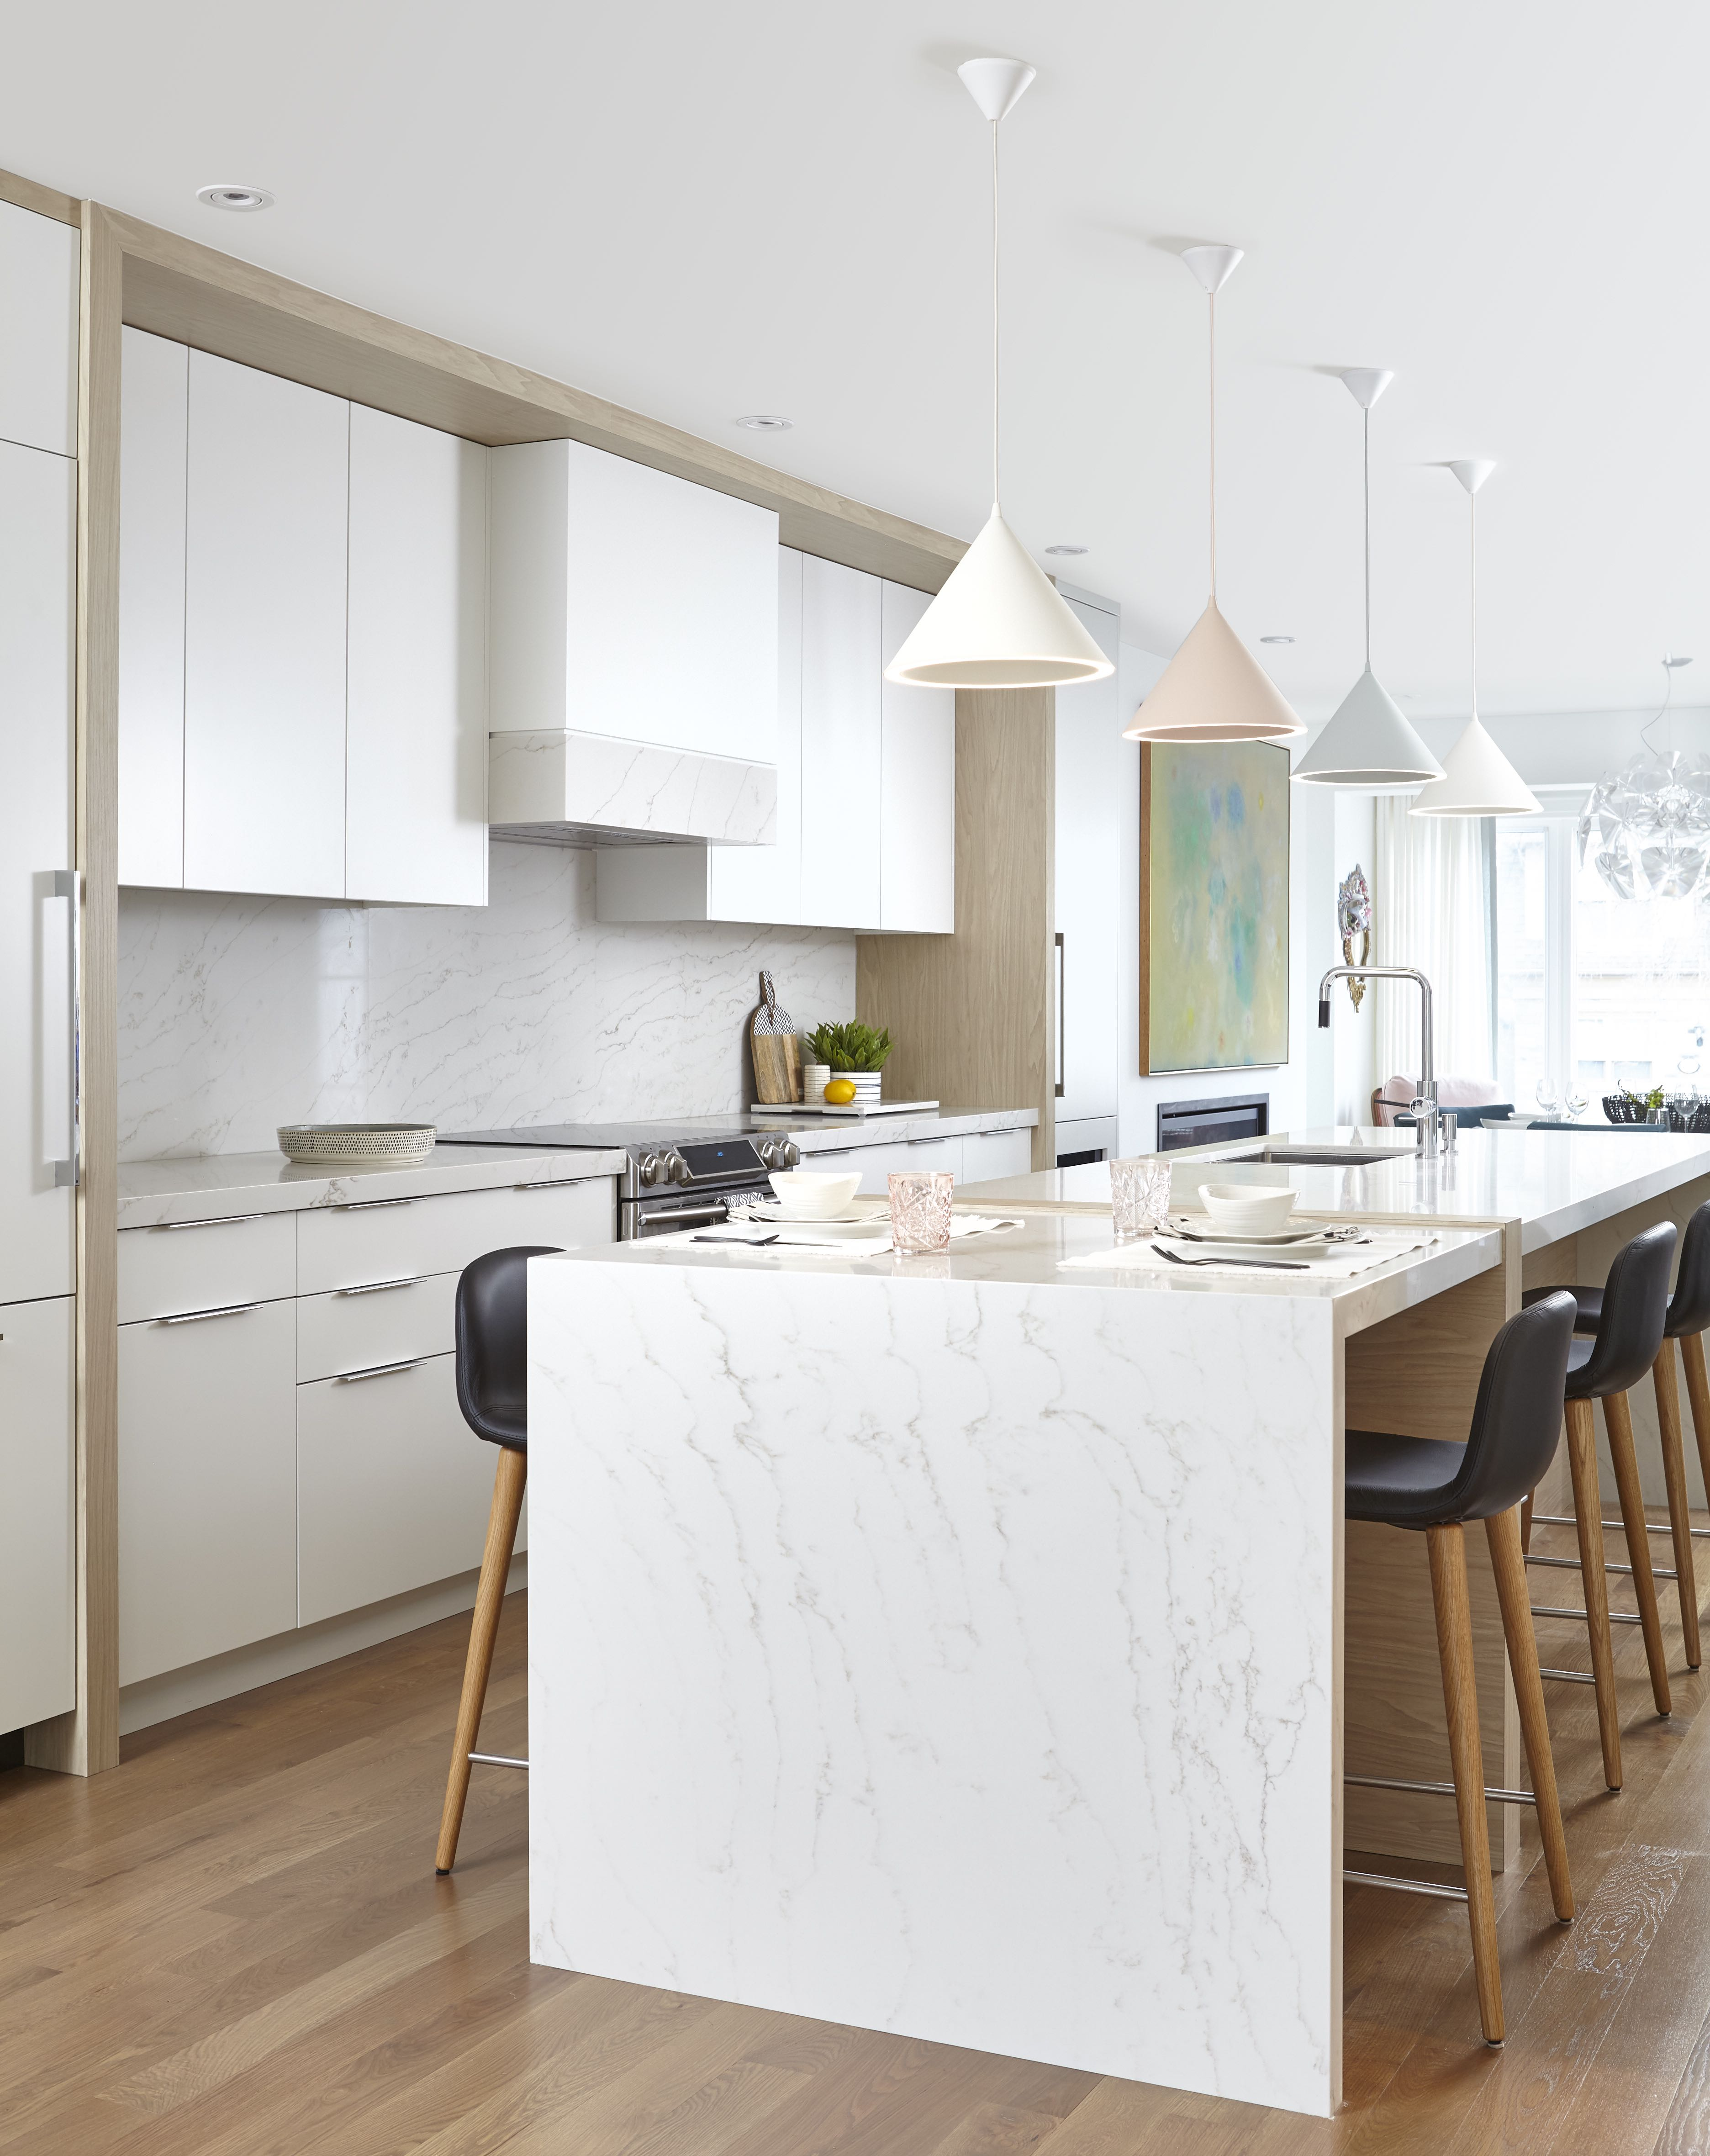 Design Theory Forest Hill Renovation